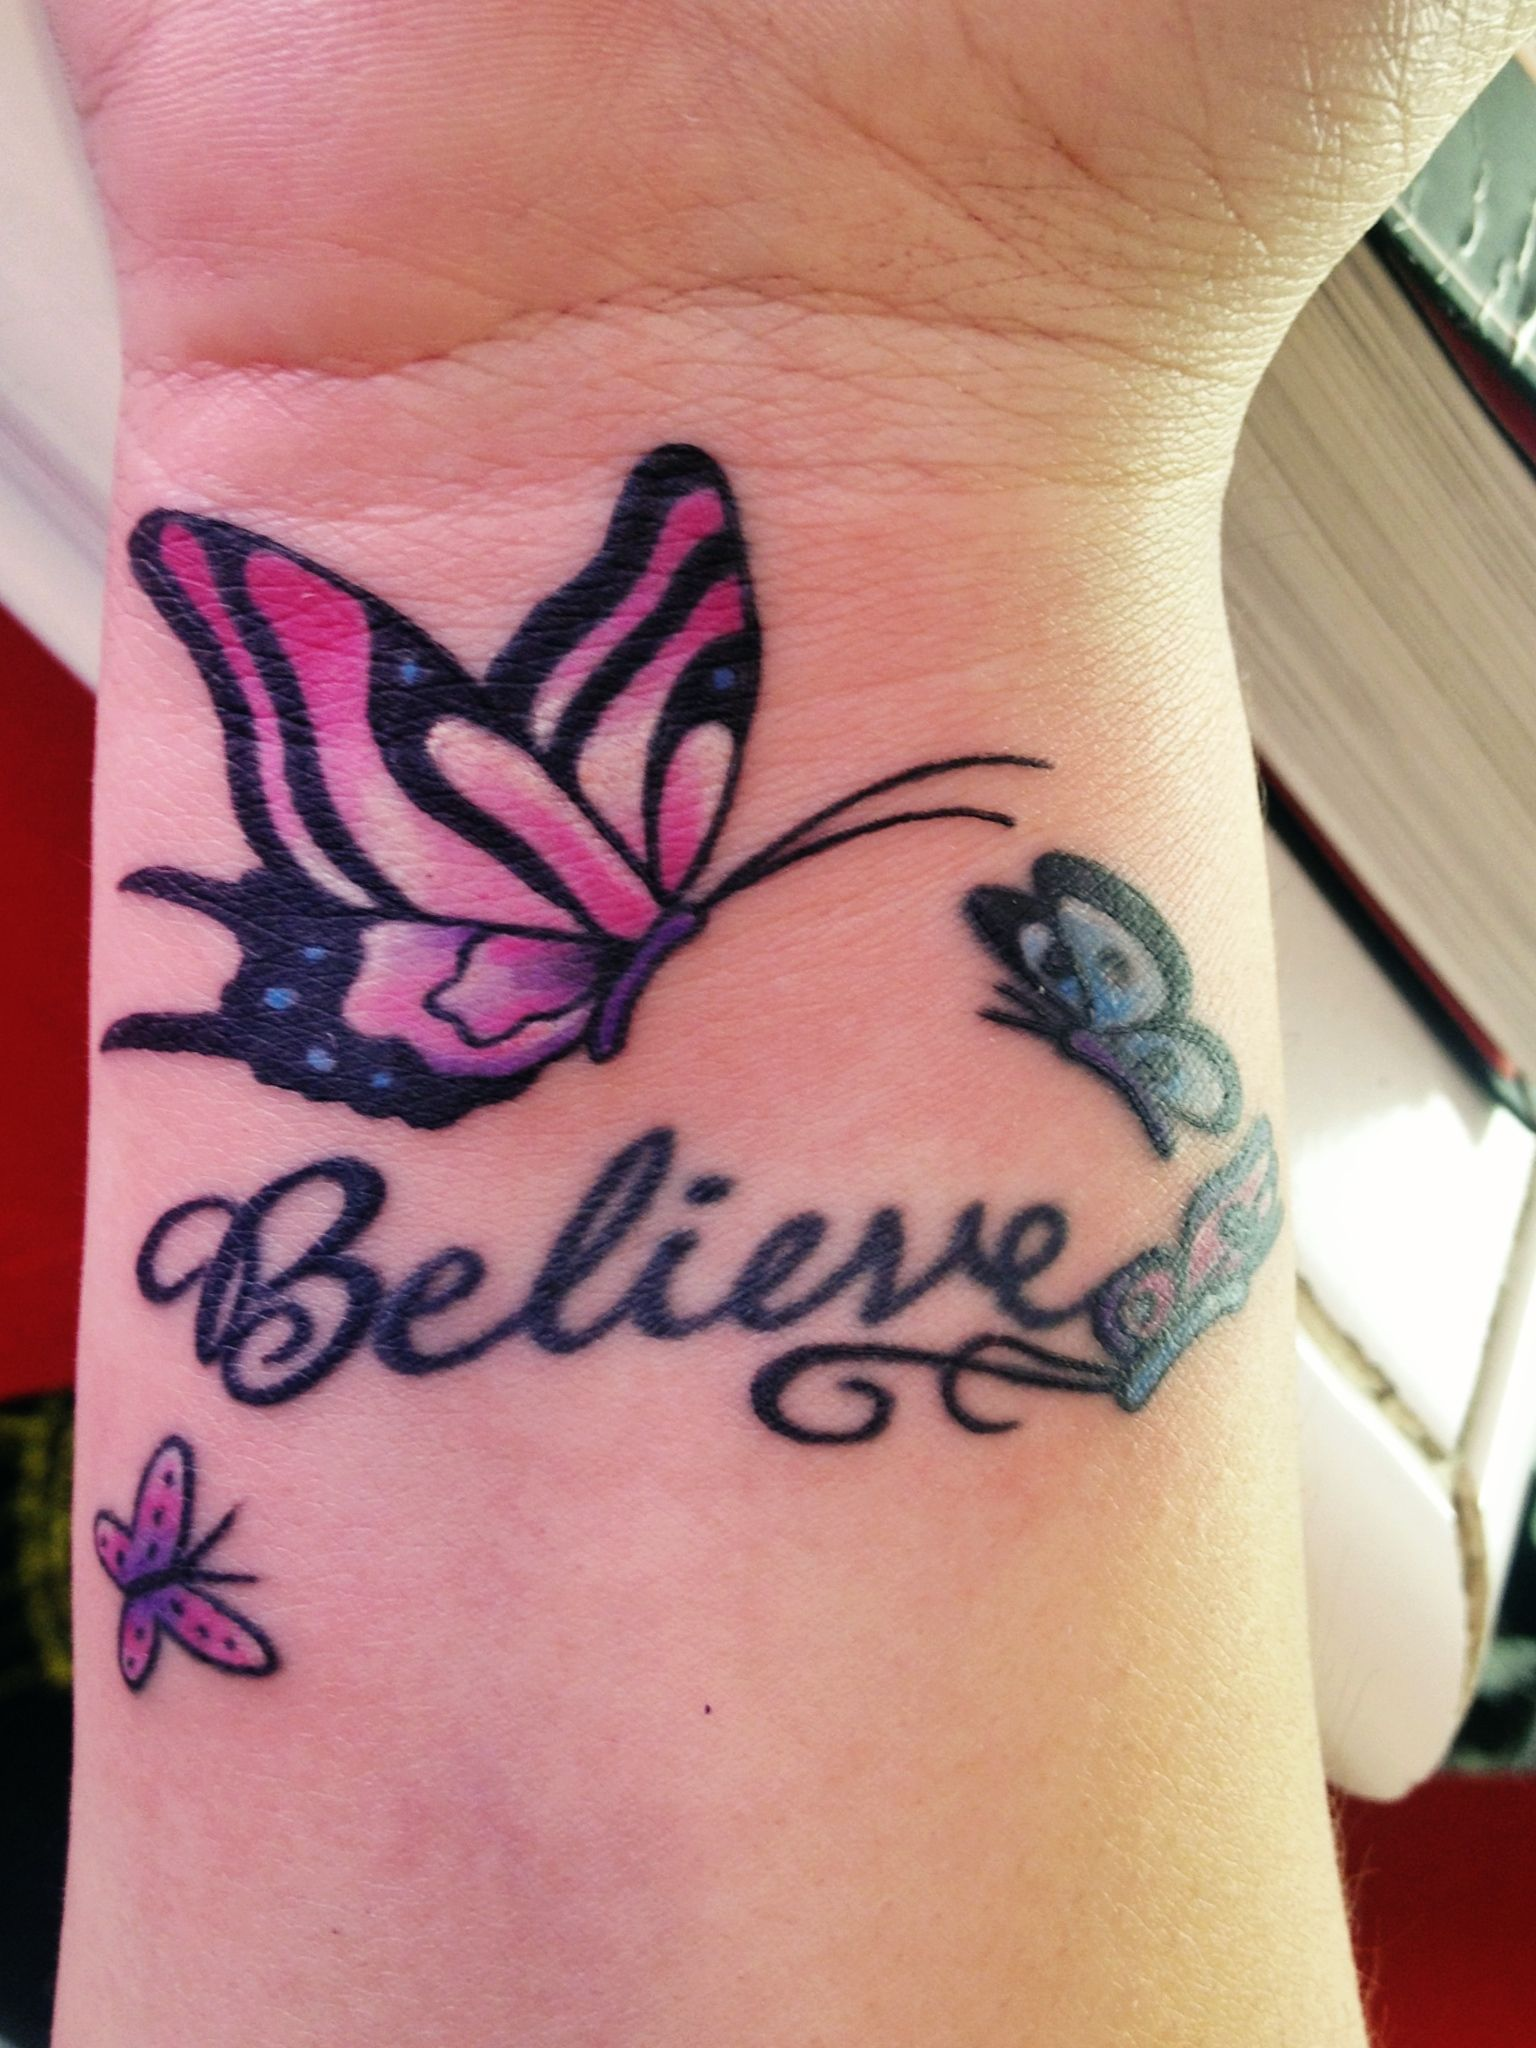 obsessed with my tattoo butterflies Believe tattoos